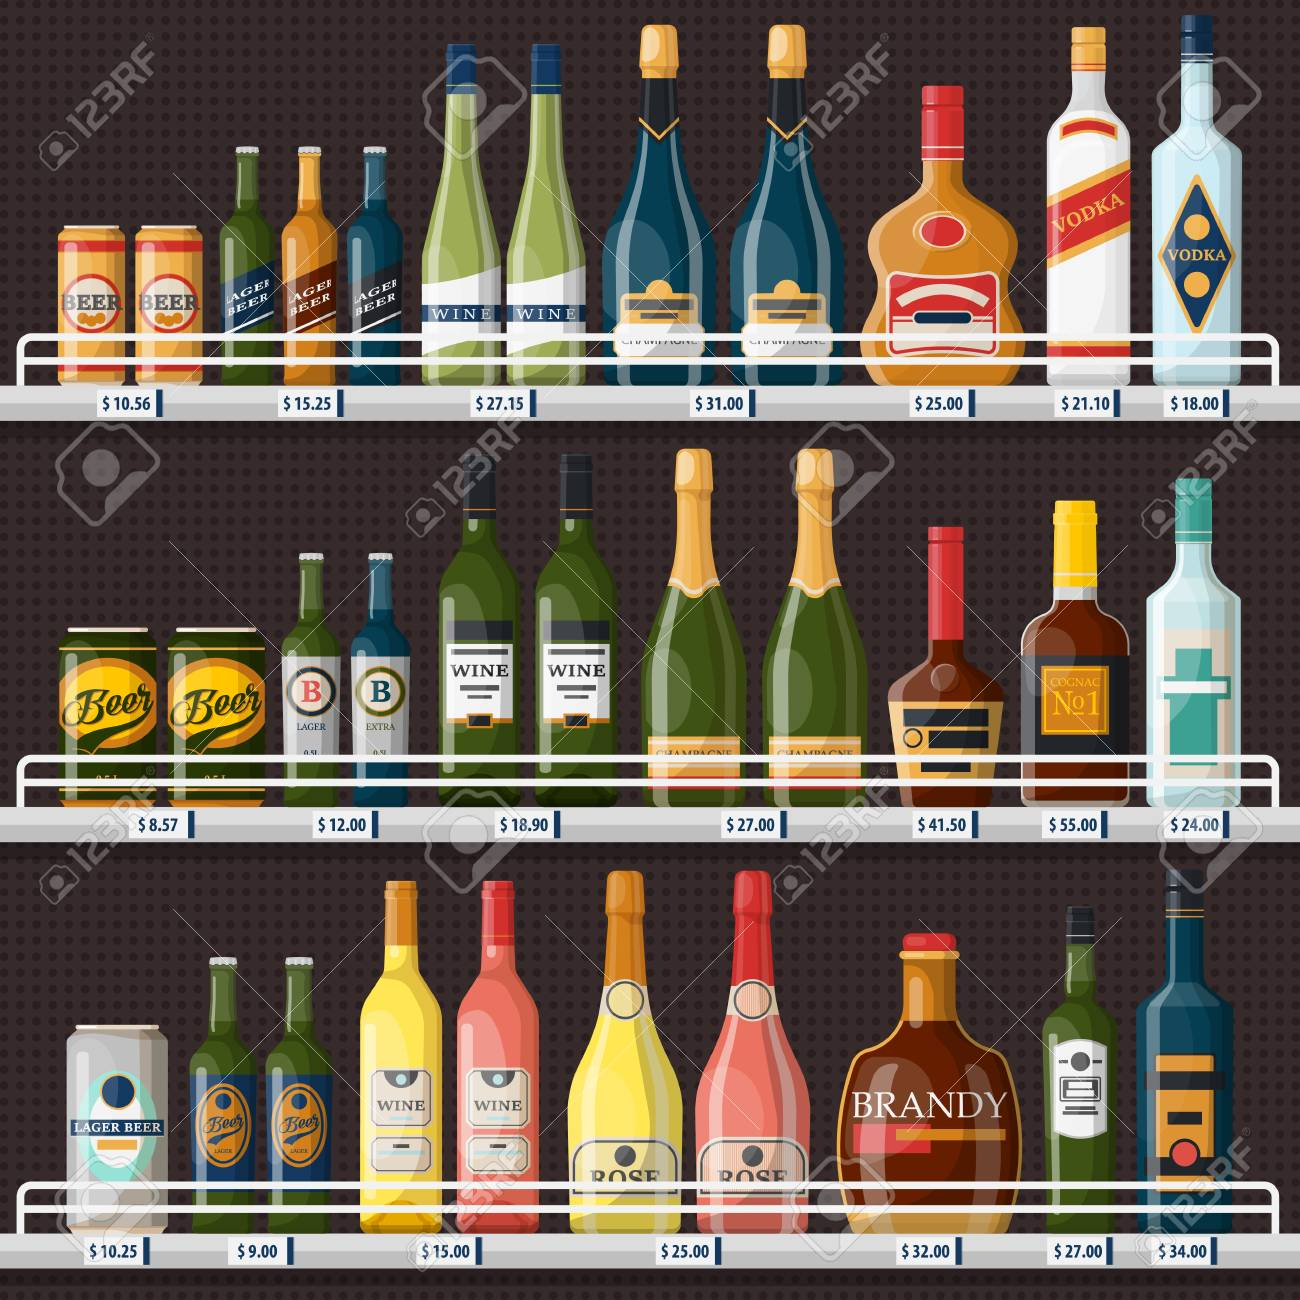 Showcase with alcohol drinks or beverages - 101233025